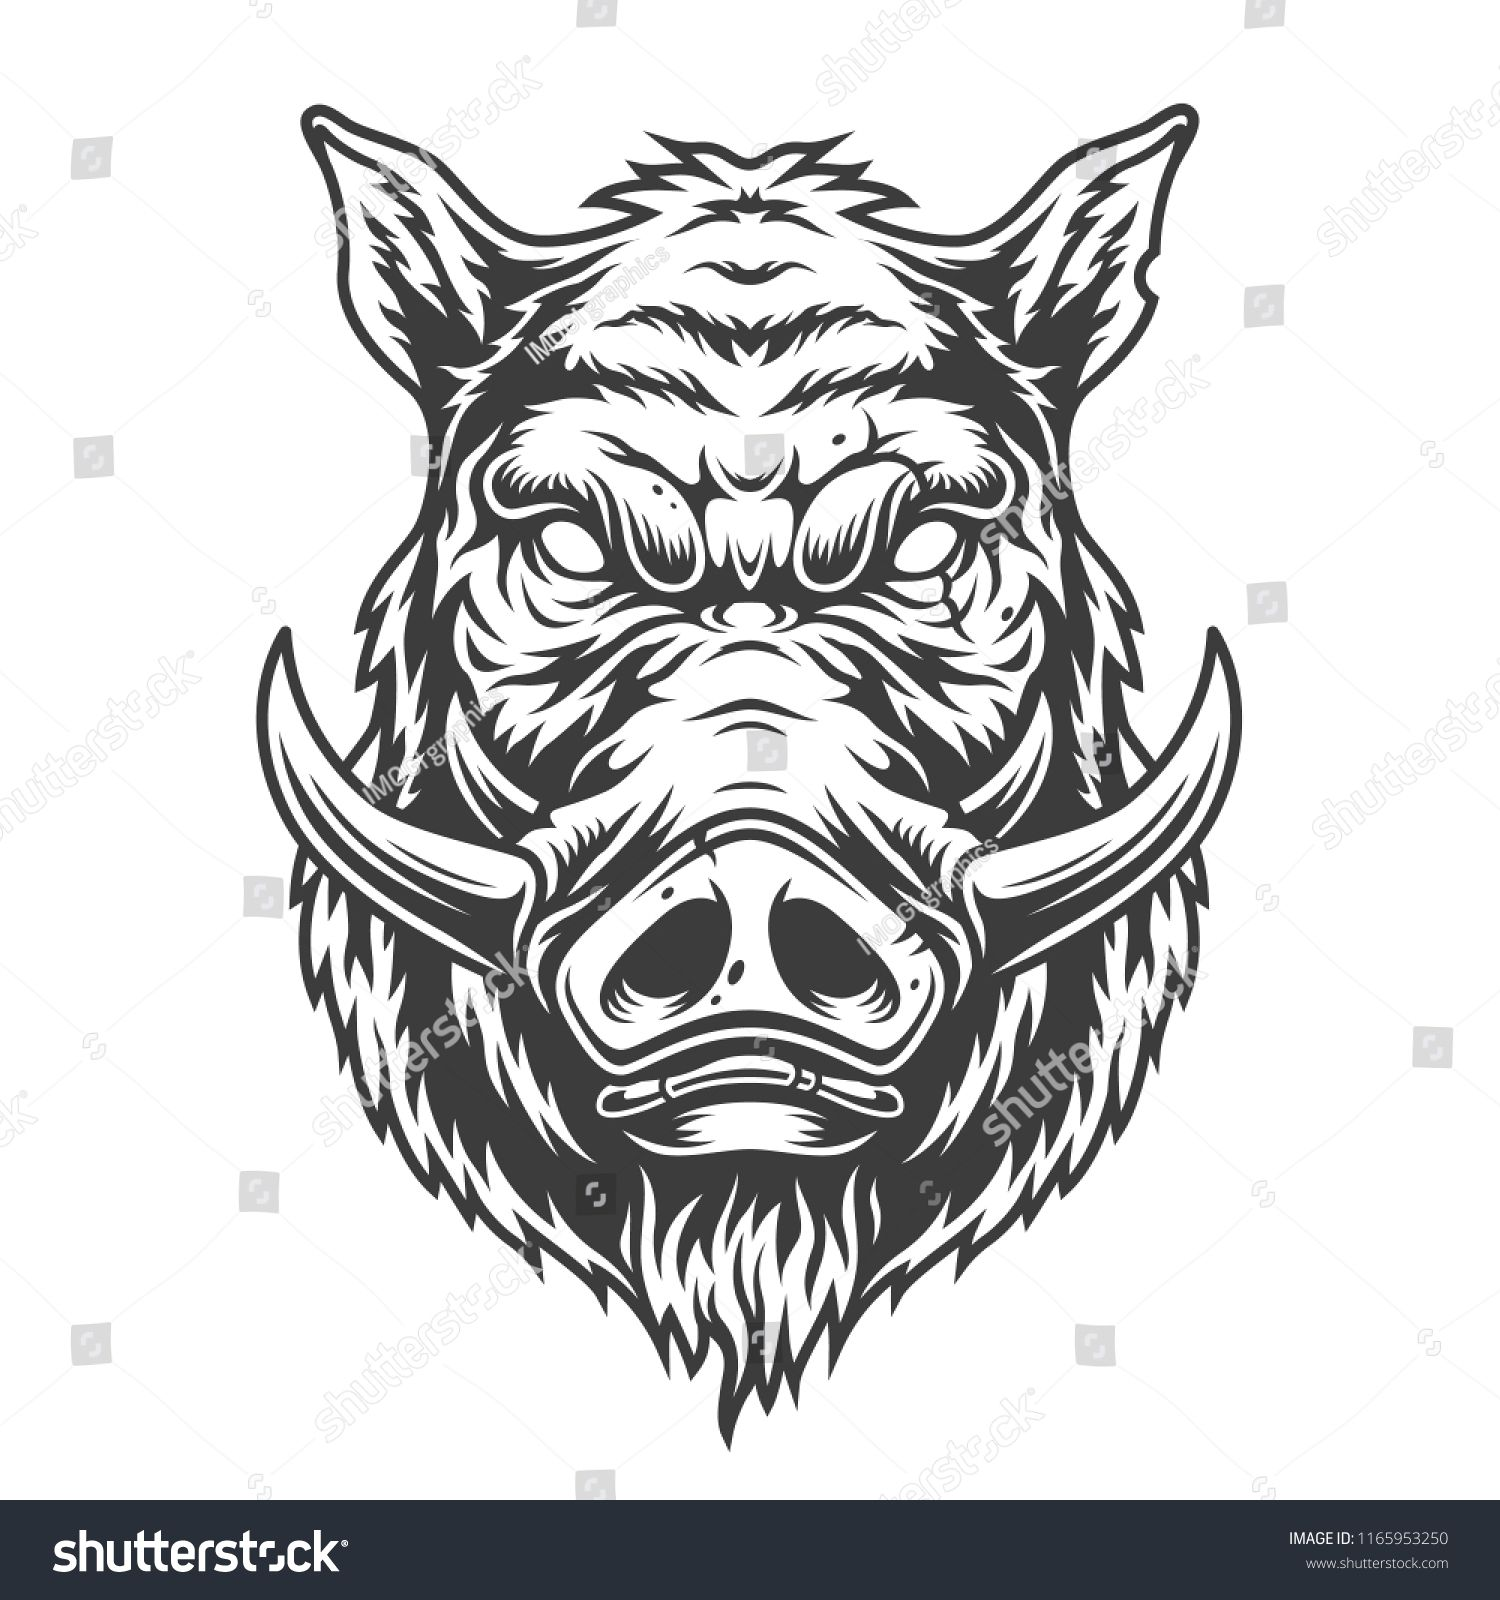 Boar head in black and white color style. Vector.